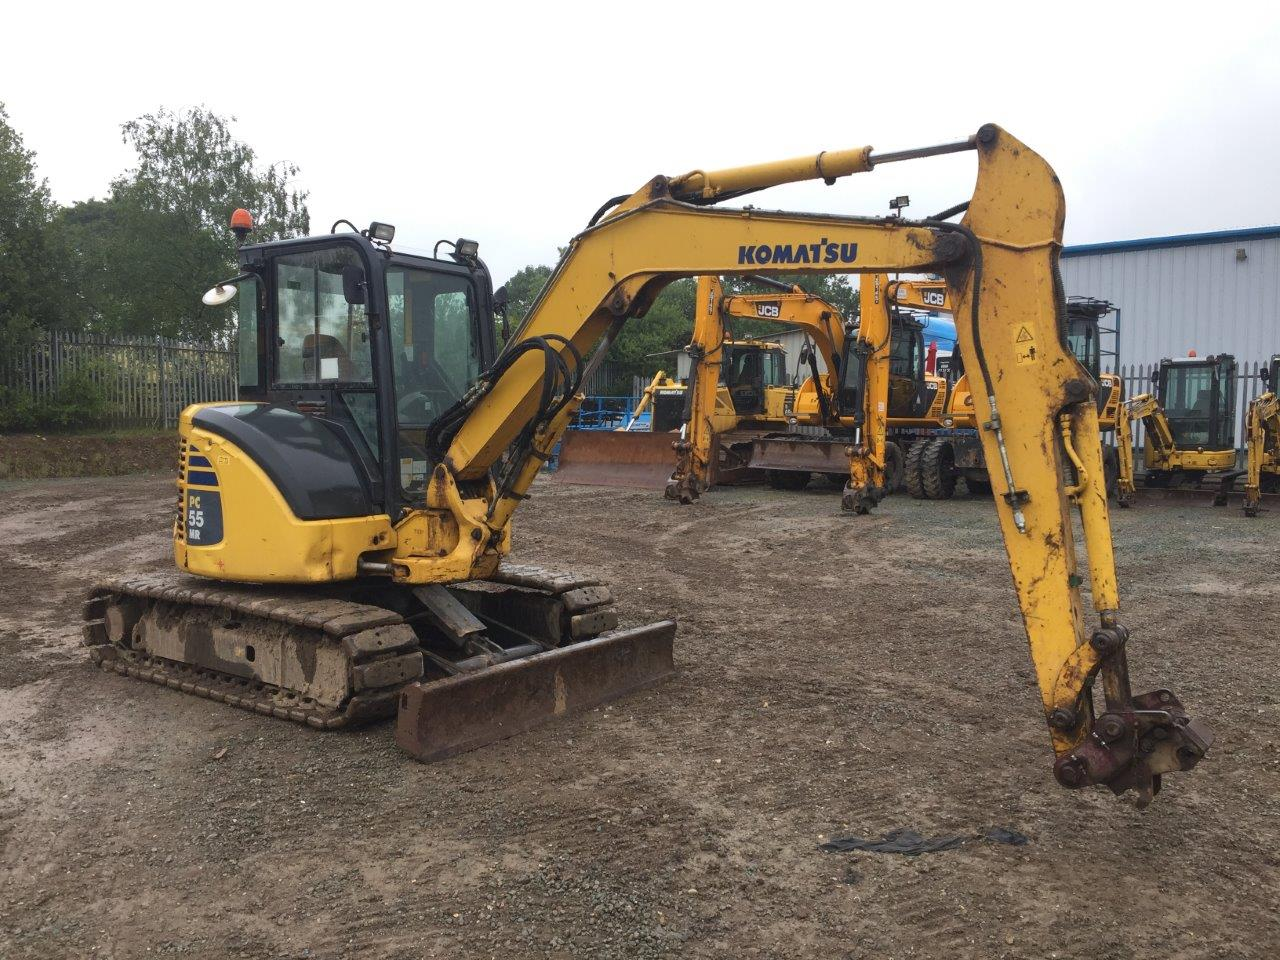 5 ton digger for sale komatsu pc55 from ridgway rentals. Black Bedroom Furniture Sets. Home Design Ideas